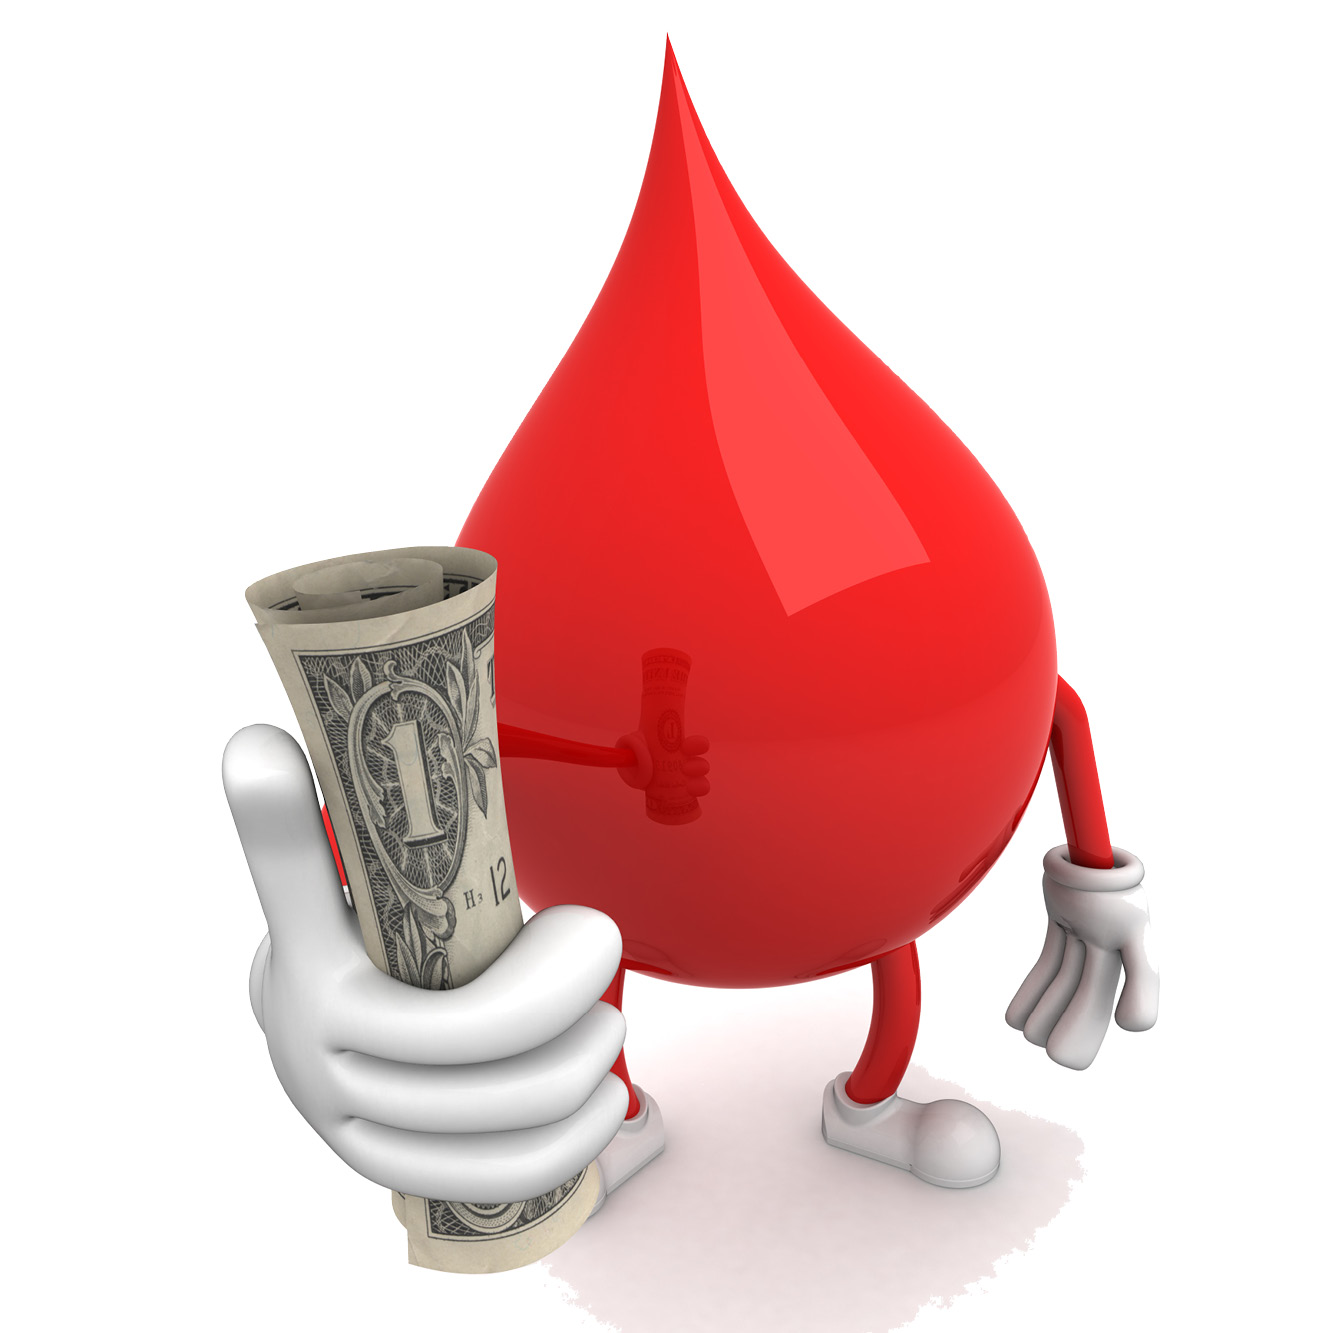 Image of a drop of blood holding a dollar bill